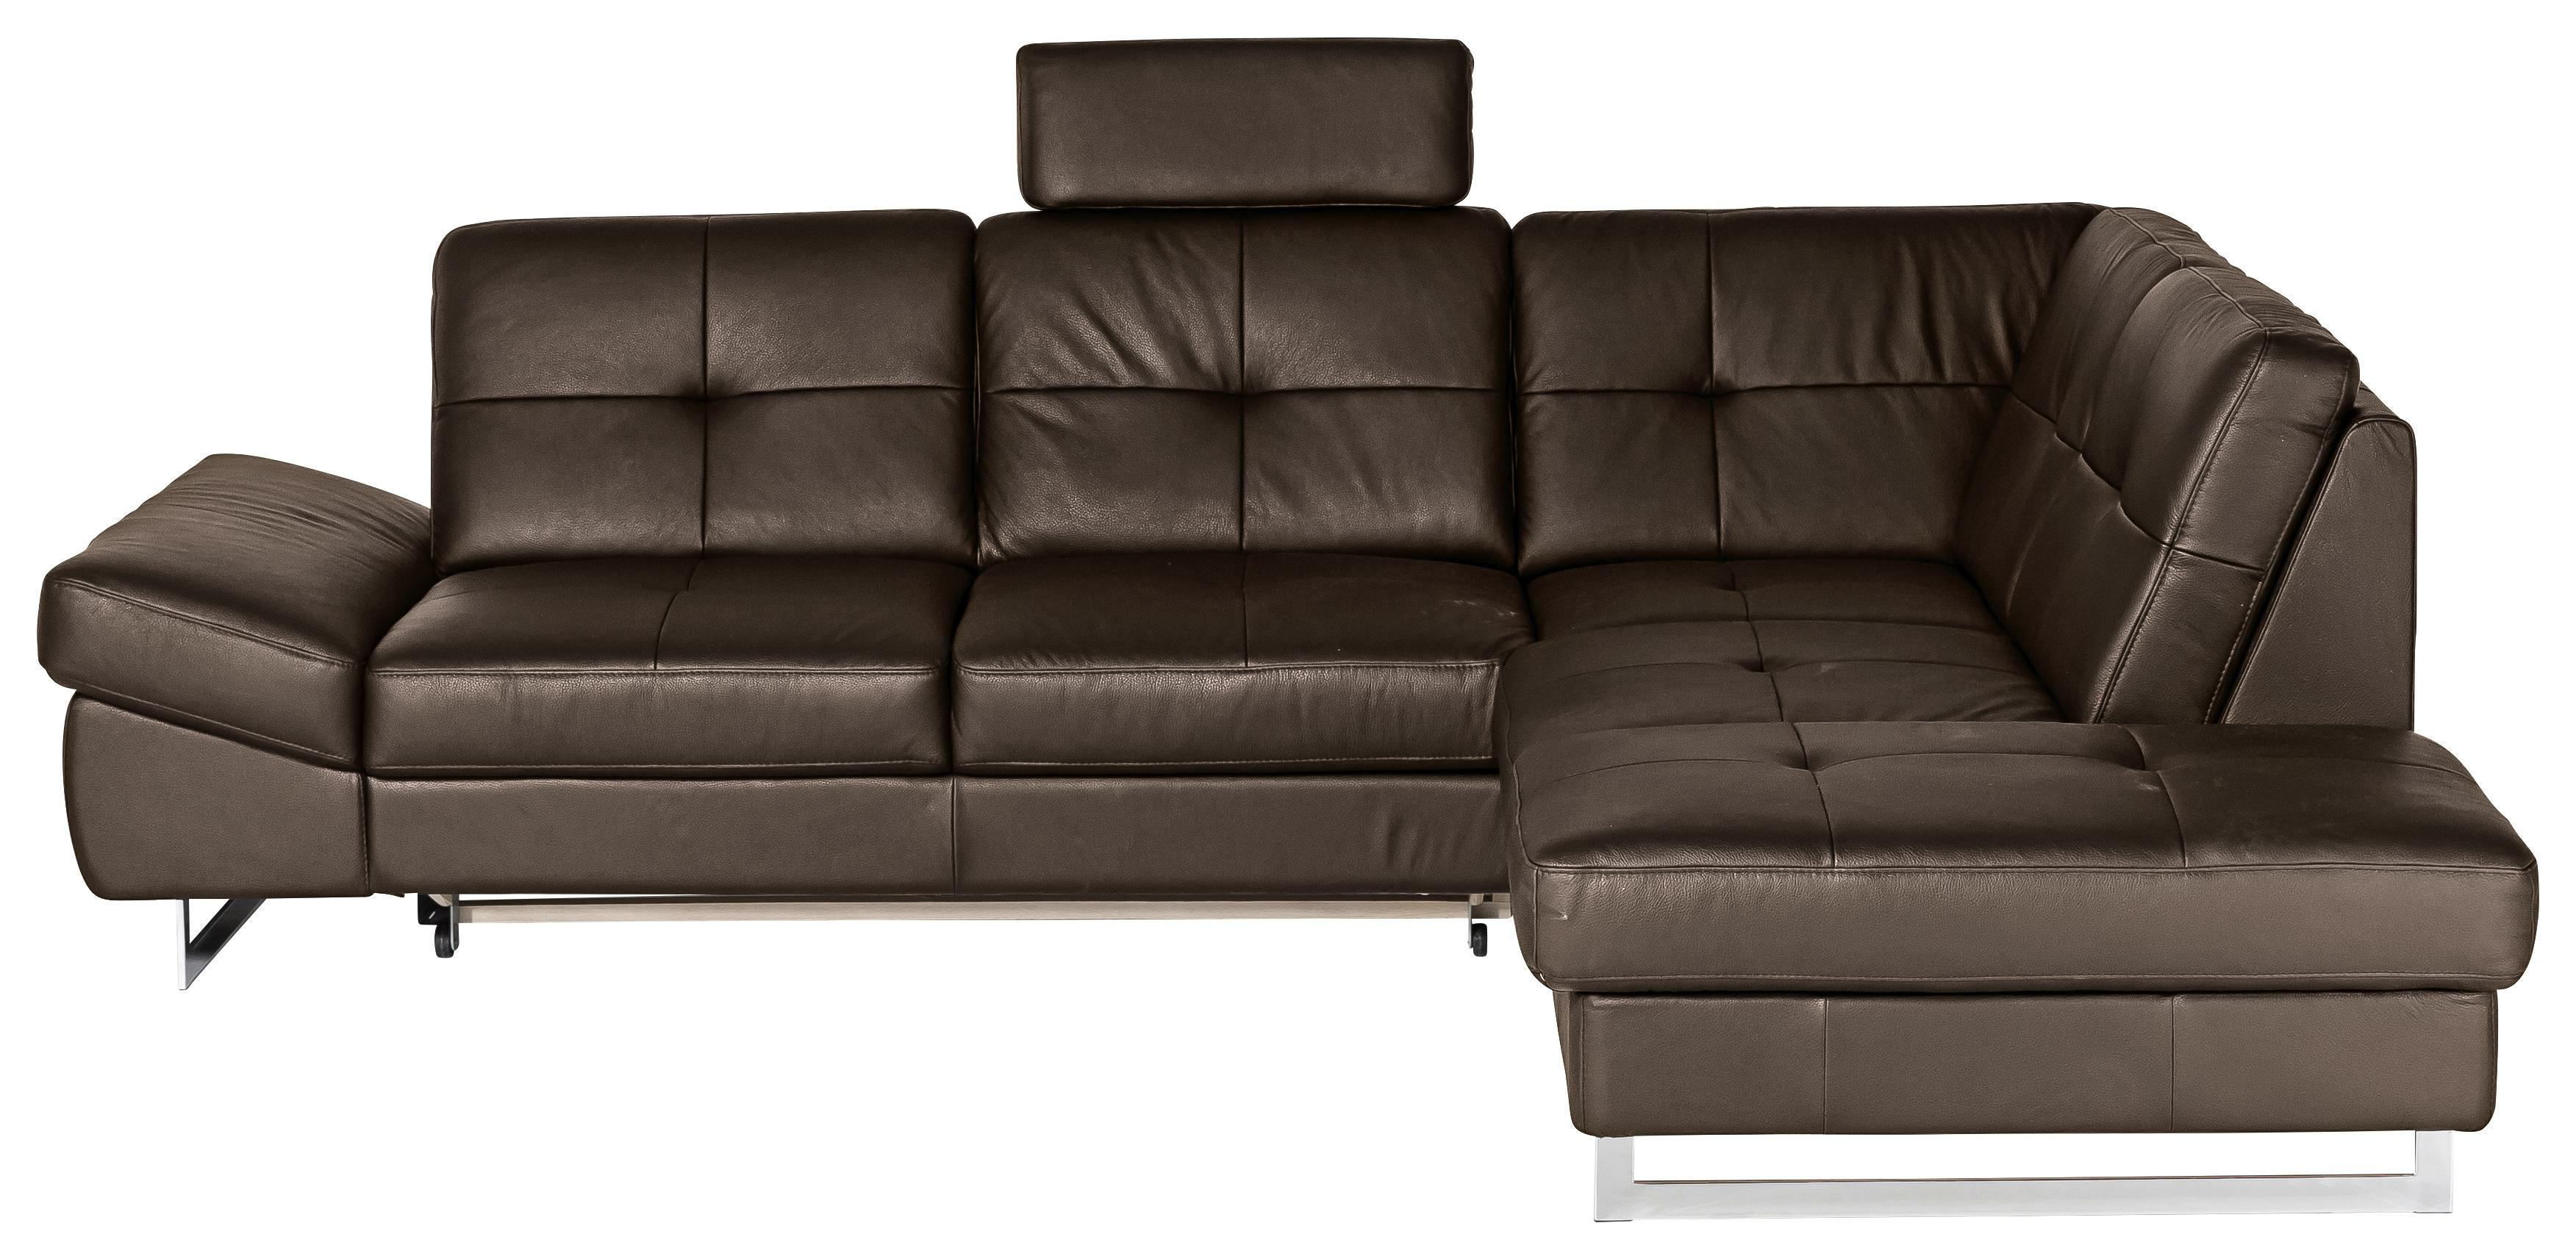 Ecksofa Norwich Ecksofa Fort Dodge